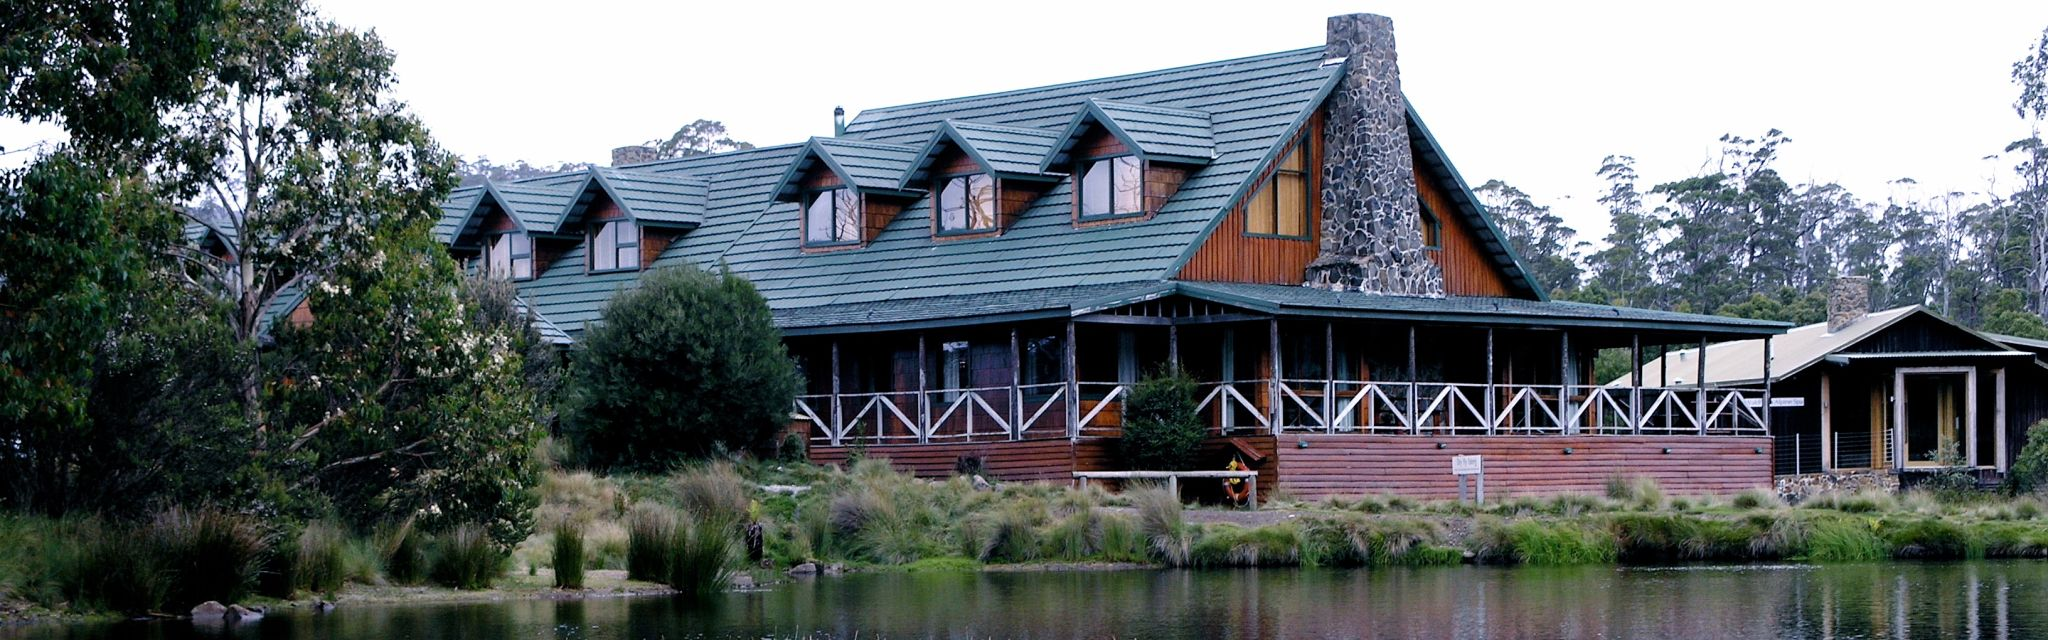 Cradle Mountain Lodge, preferred accommodation on our Tasmania National Parks Tour